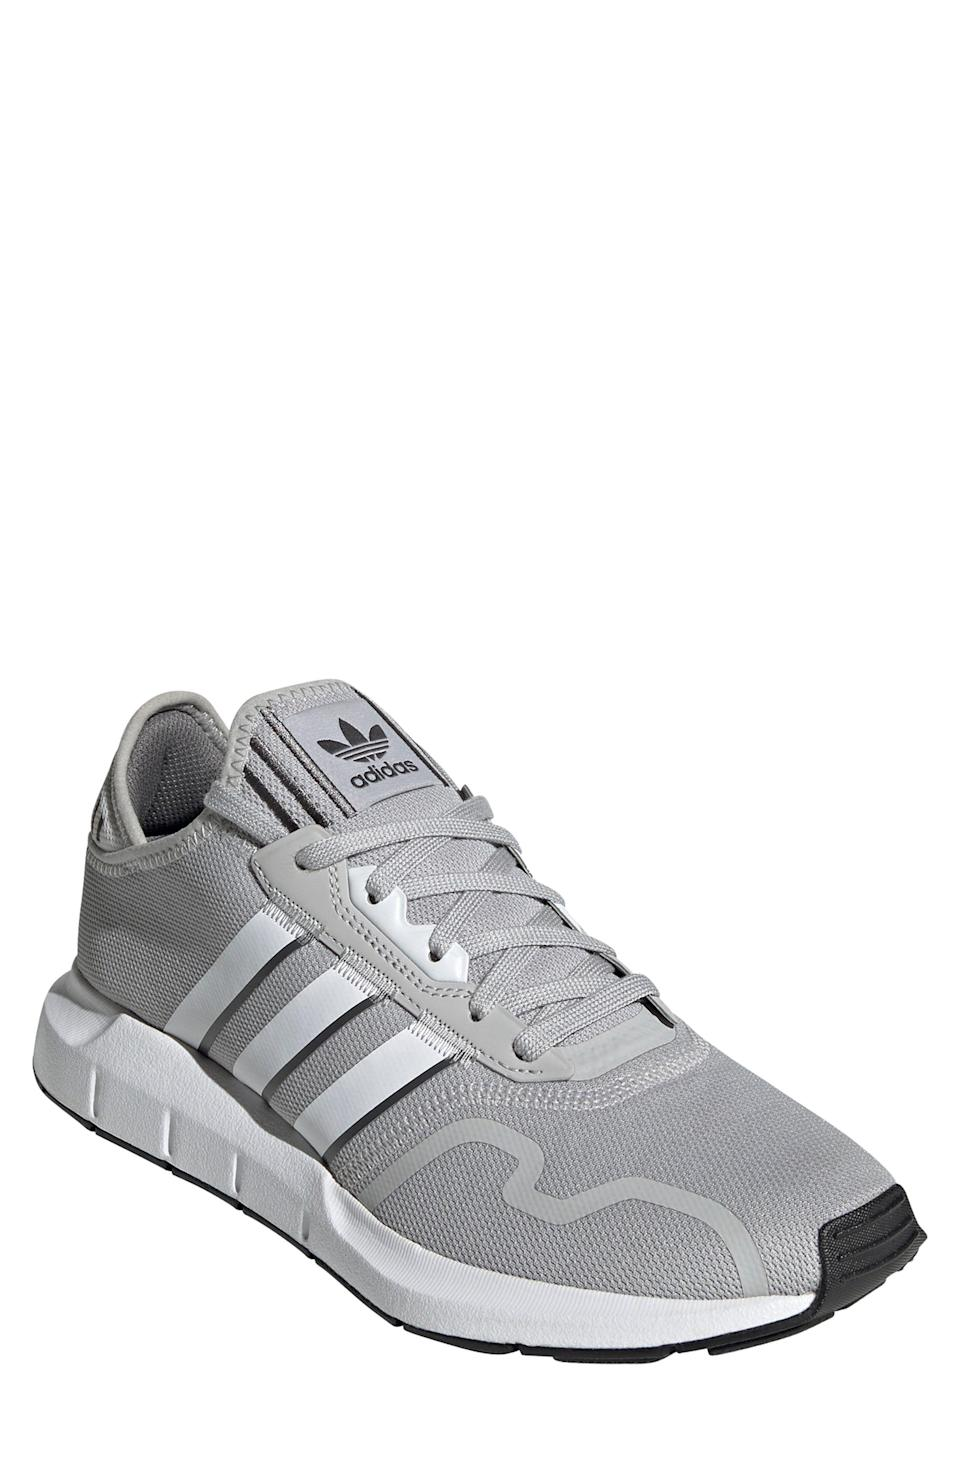 """<p><strong>ADIDAS</strong></p><p>nordstrom.com</p><p><a href=""""https://go.redirectingat.com?id=74968X1596630&url=https%3A%2F%2Fwww.nordstrom.com%2Fs%2Fadidas-swift-run-x-sneaker-men%2F5747490&sref=https%3A%2F%2Fwww.menshealth.com%2Fstyle%2Fg37081969%2Fnordstroms-anniversary-sale-best-sneakers%2F"""" rel=""""nofollow noopener"""" target=""""_blank"""" data-ylk=""""slk:BUY IT HERE"""" class=""""link rapid-noclick-resp"""">BUY IT HERE</a></p><p><del>$85<br></del><strong>$52.90</strong></p><p>Want to take a walk down memory lane? Adidas upgraded this '80s-inspired pair with a pull-on sock upper and EVA cushioning.</p>"""